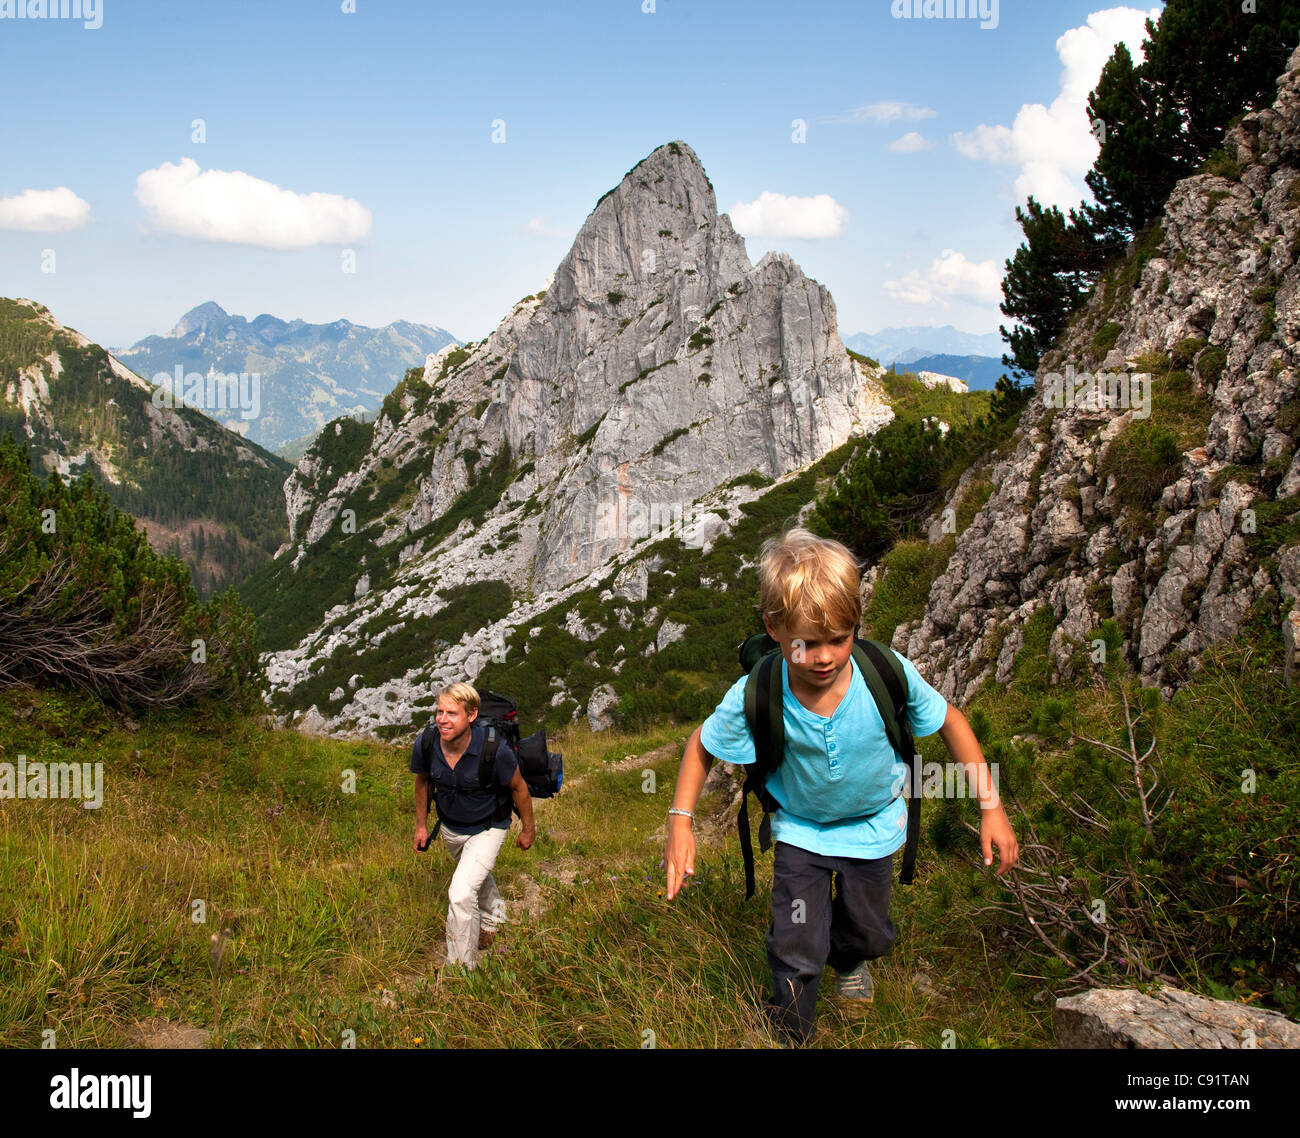 Father and son hiking on mountain path - Stock Image